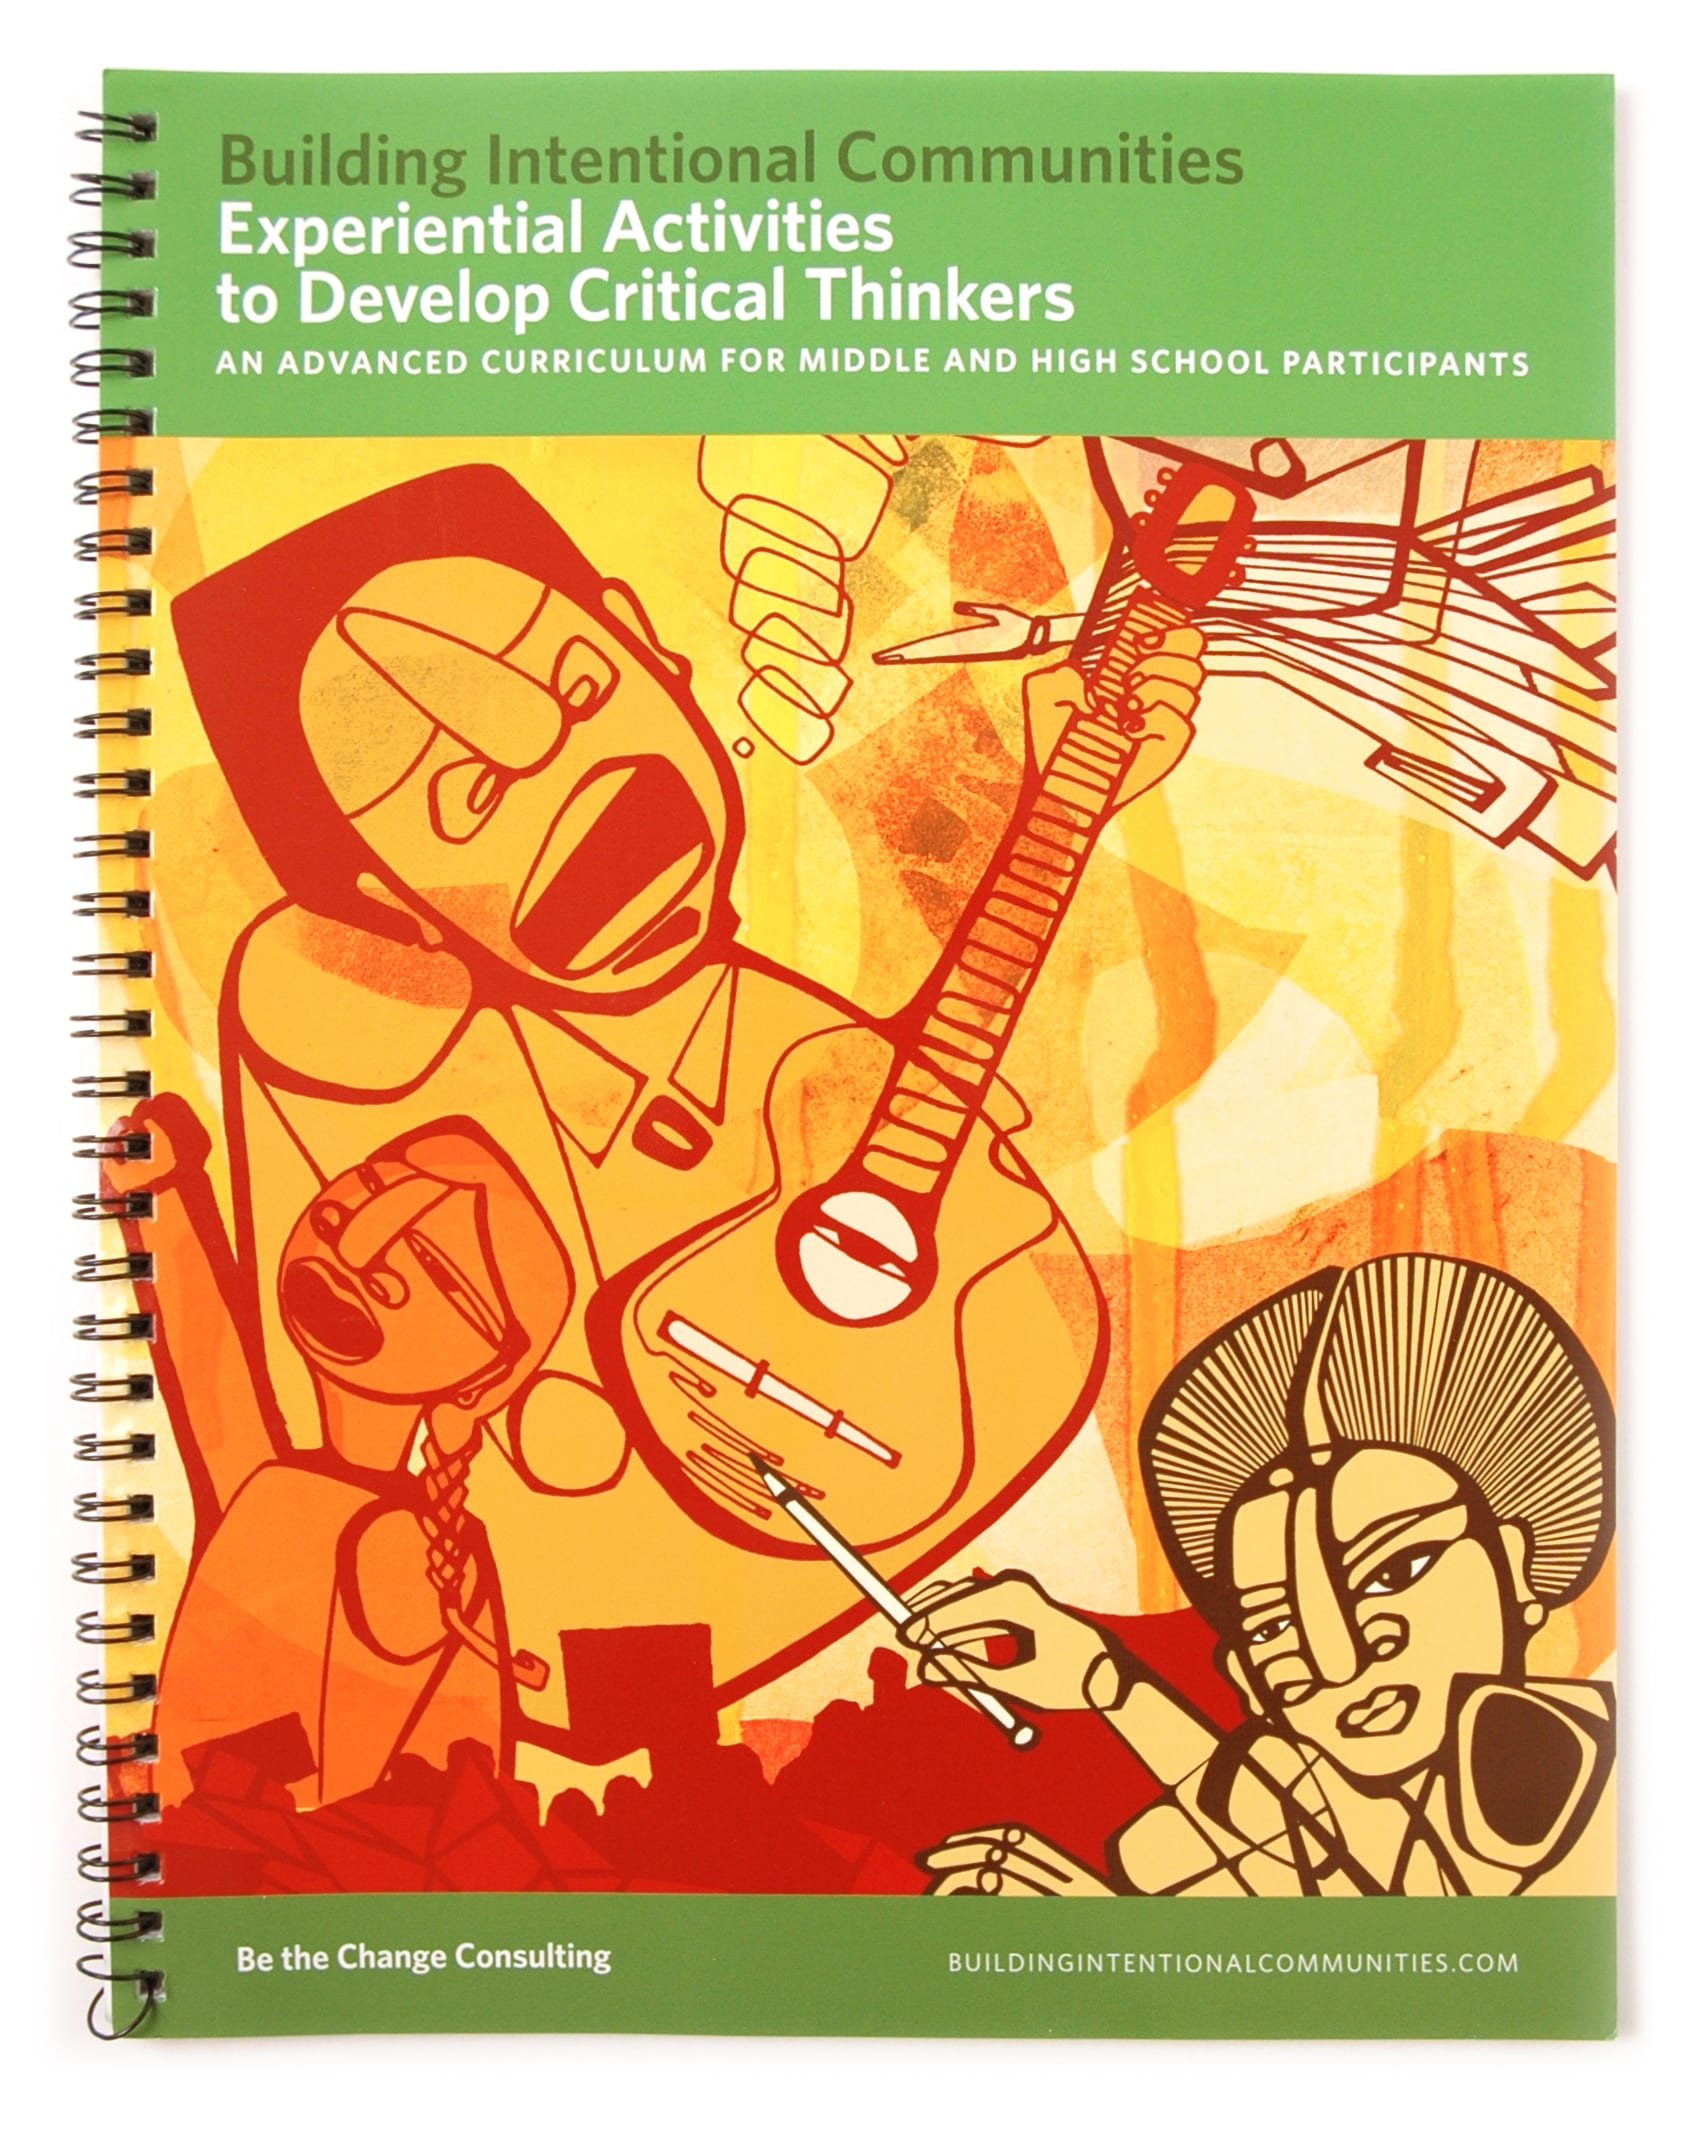 Experiential Activities to Develop Critical Thinkers